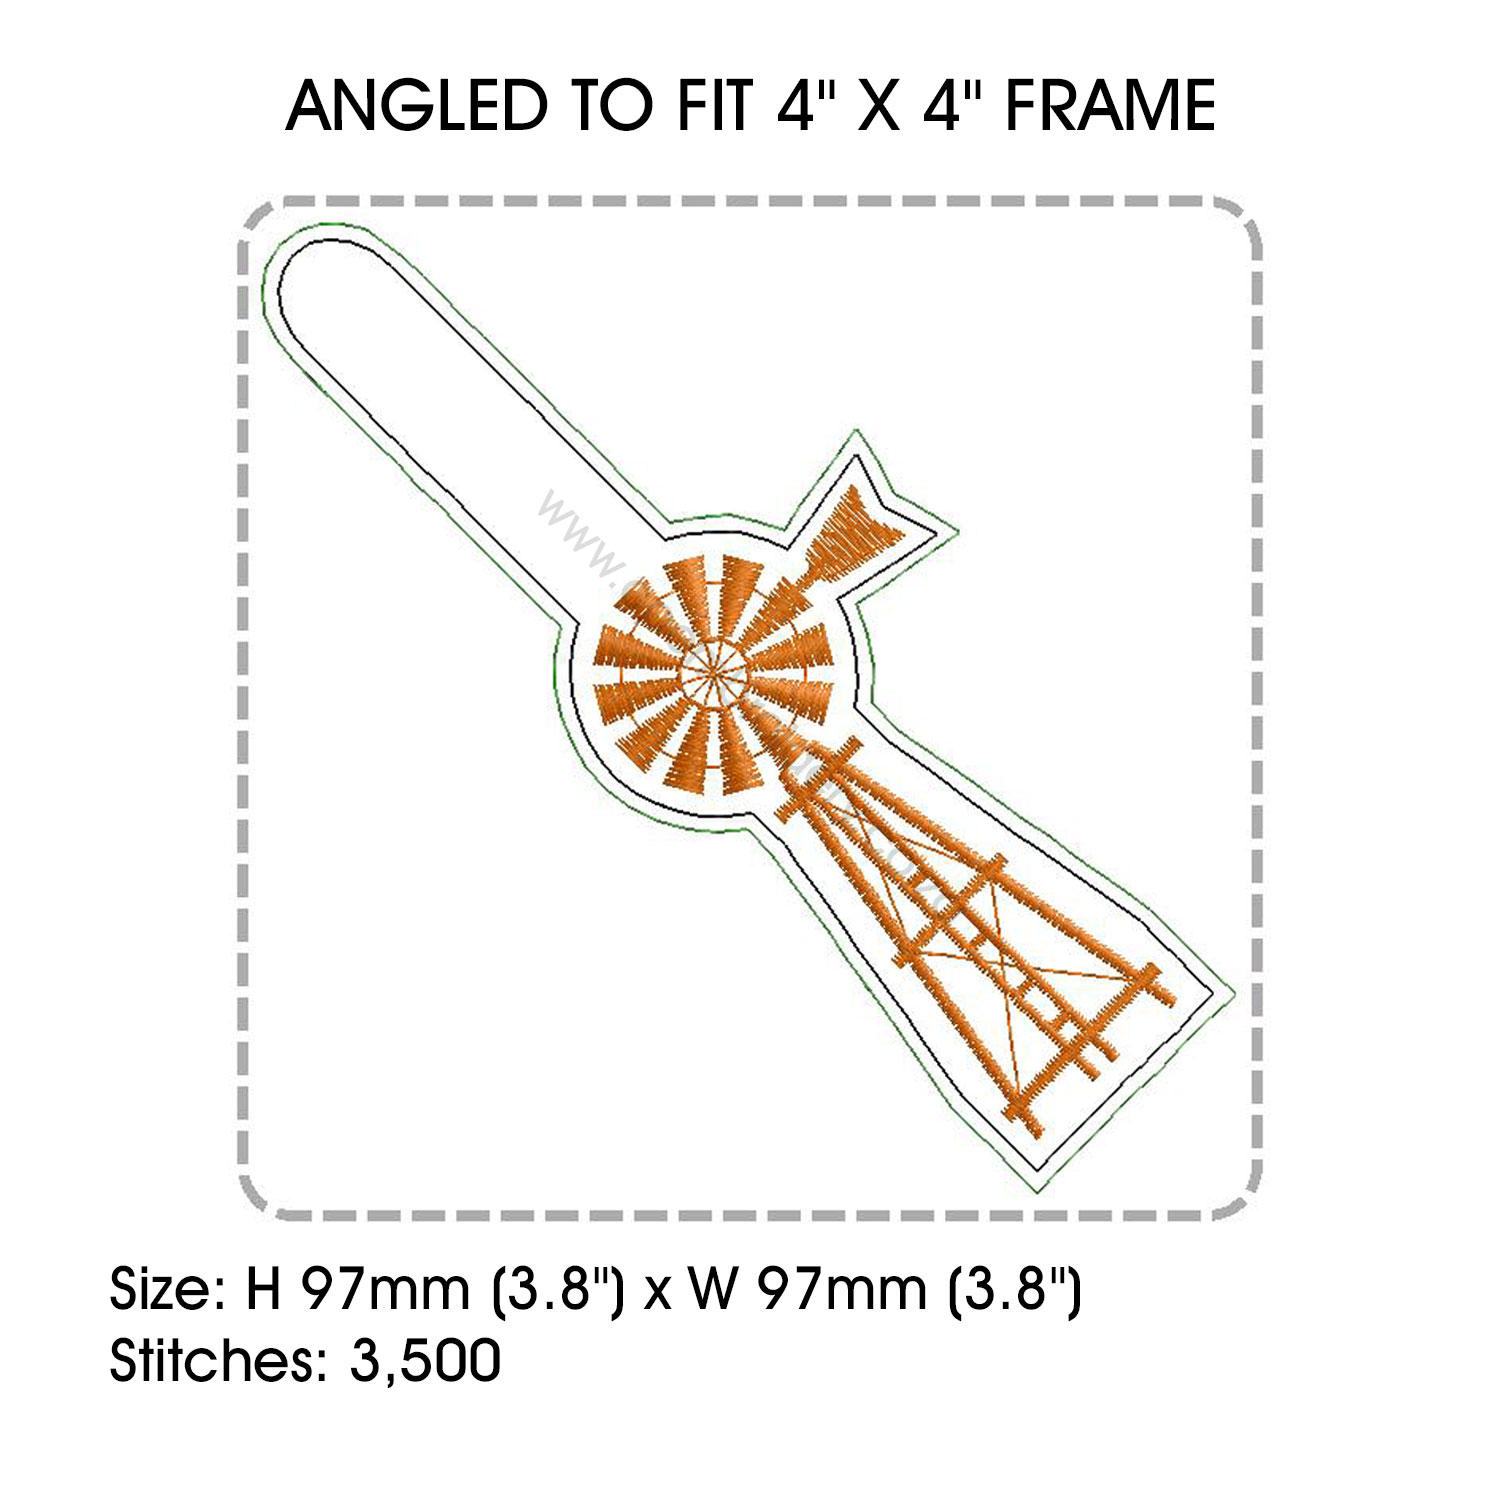 African Farmhouse Windmill Key Fob Embroidery Design on computer schematic, water pump schematic, battery schematic, flashlight schematic, door schematic, engine schematic, car schematic, remote start schematic, radio schematic, cell phone schematic,